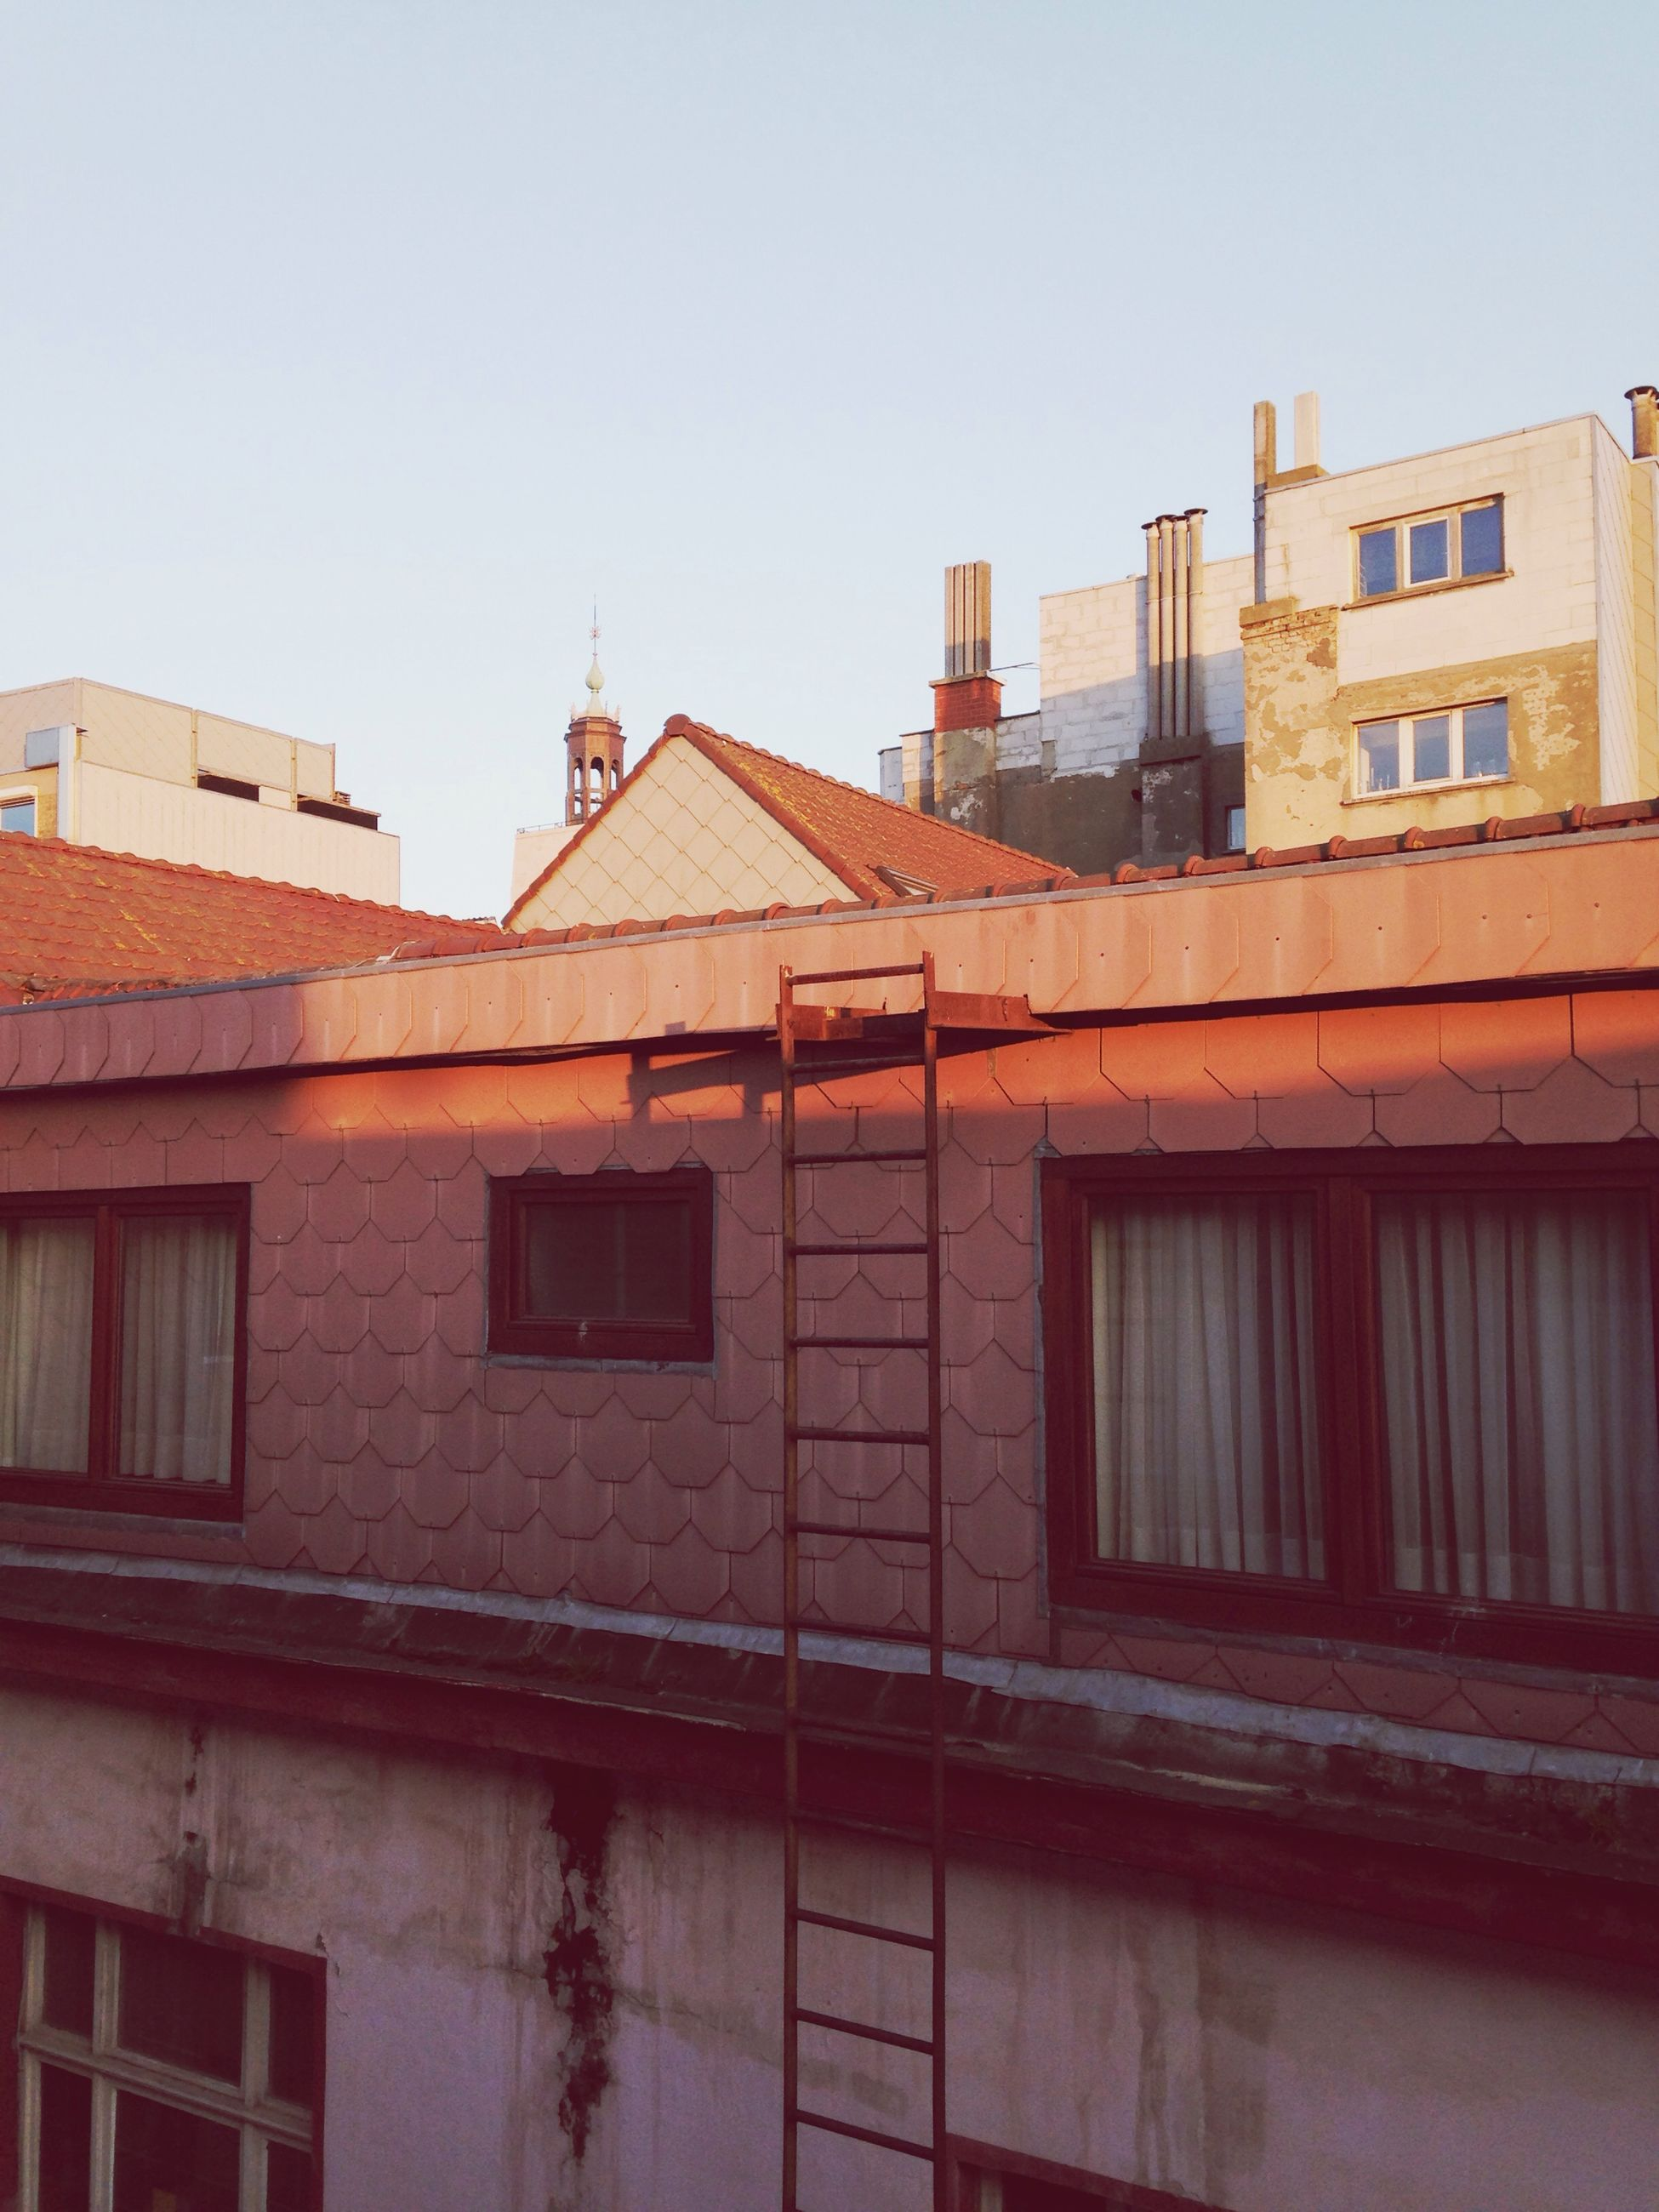 architecture, building exterior, built structure, clear sky, house, residential structure, residential building, window, roof, low angle view, copy space, building, exterior, outdoors, day, city, residential district, no people, old, brick wall